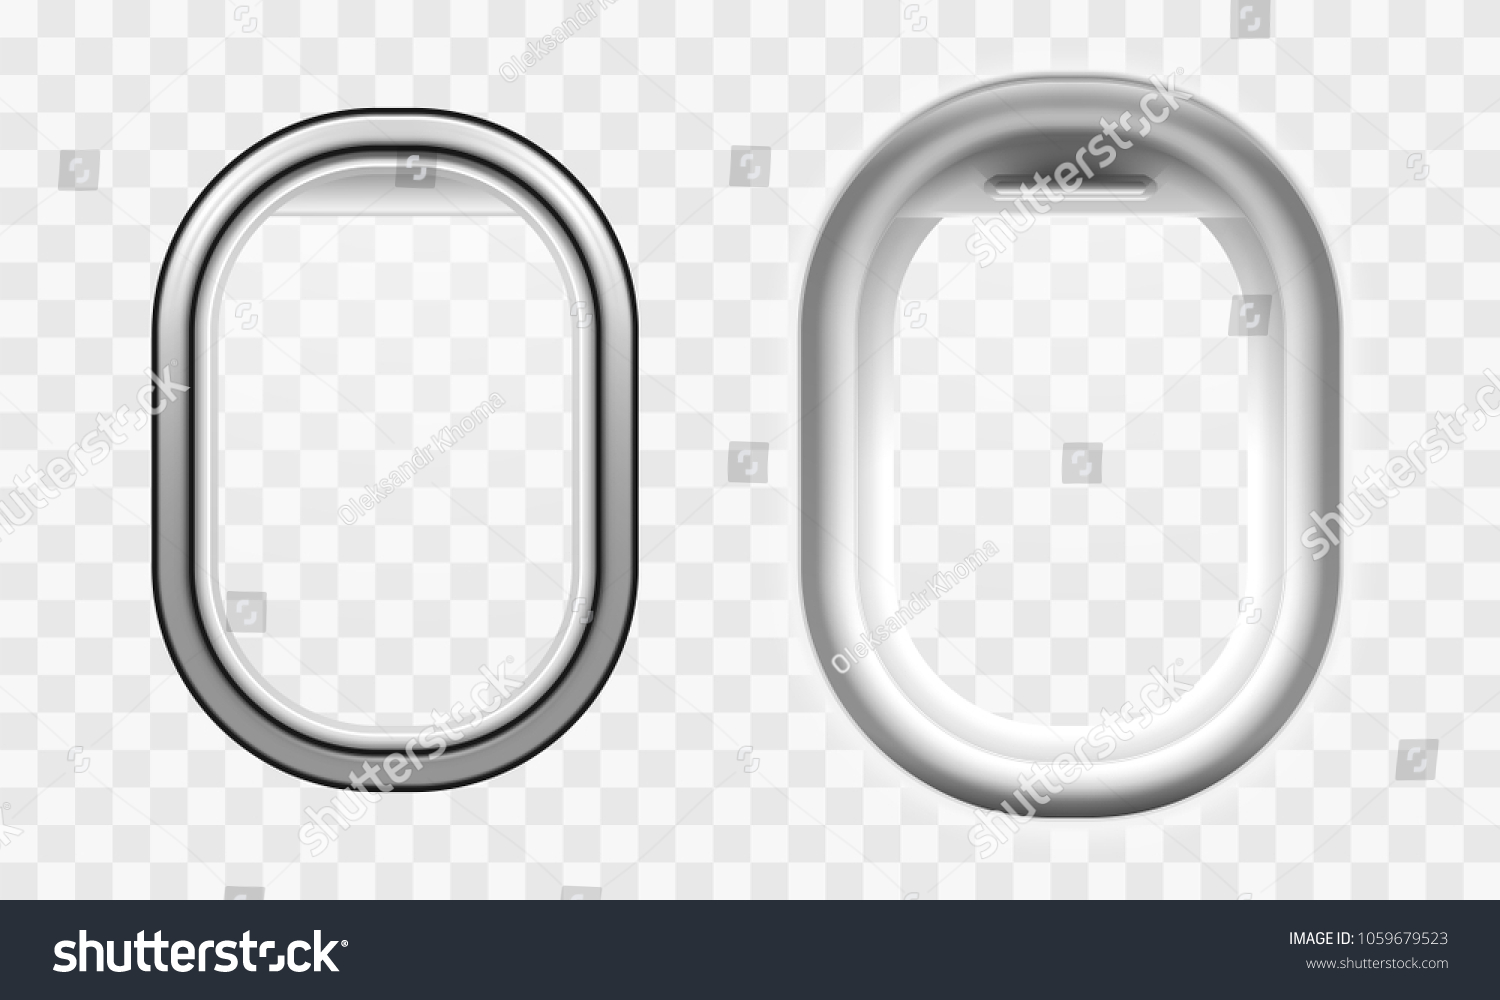 Airplane window template inside and outside view, airliner porthole vector illustration, isolated aircraft window with transparent glass